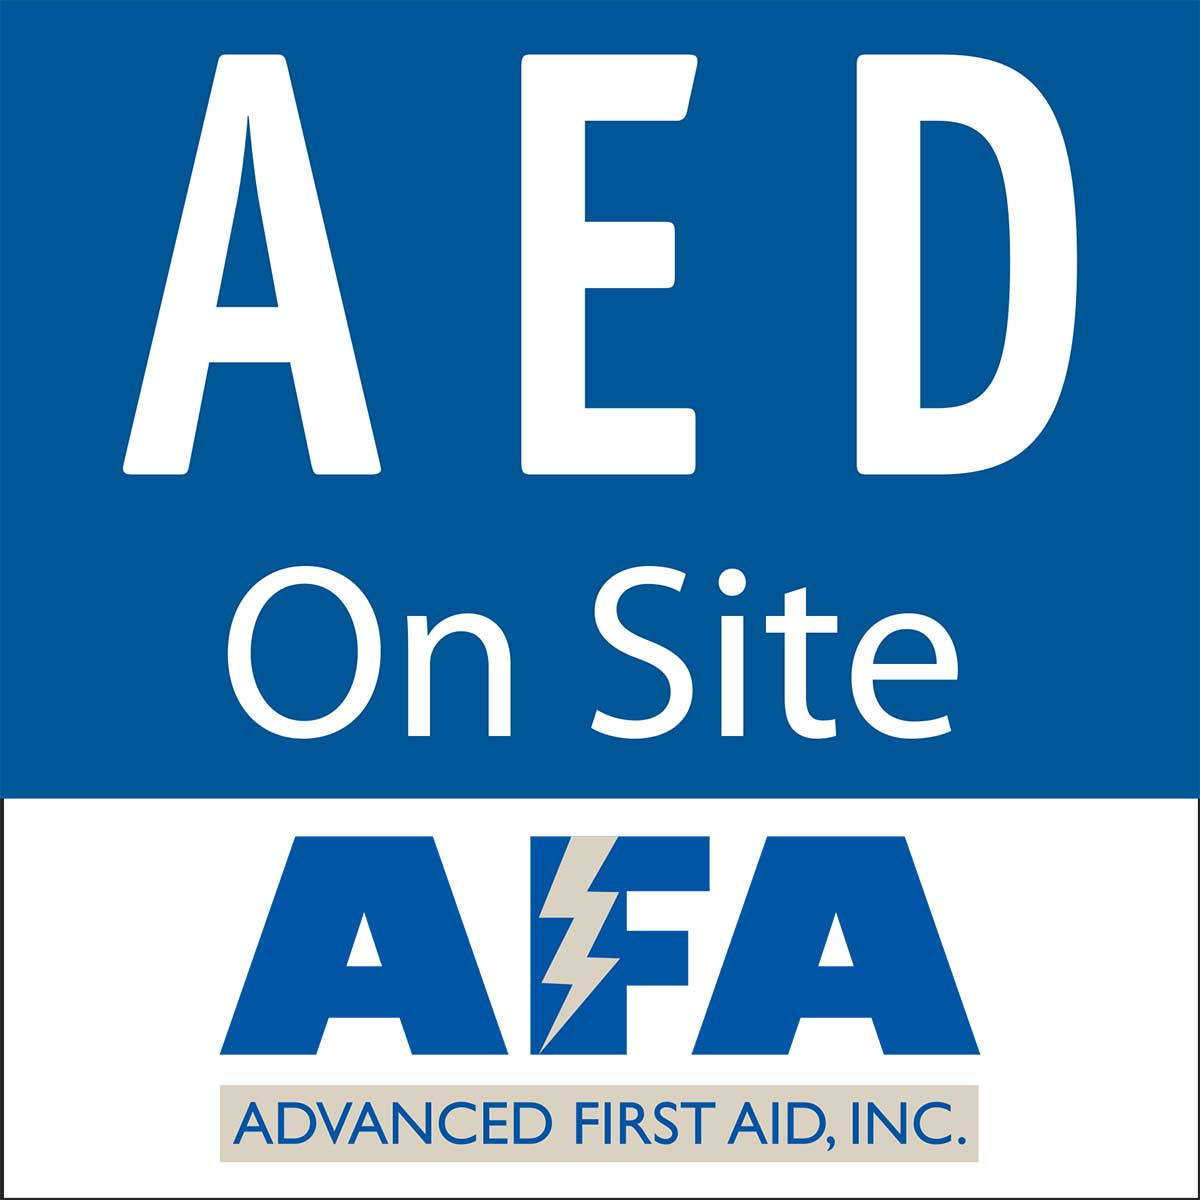 New Aed On Site Window Decal Feb 2012 6x6 Advanced 03